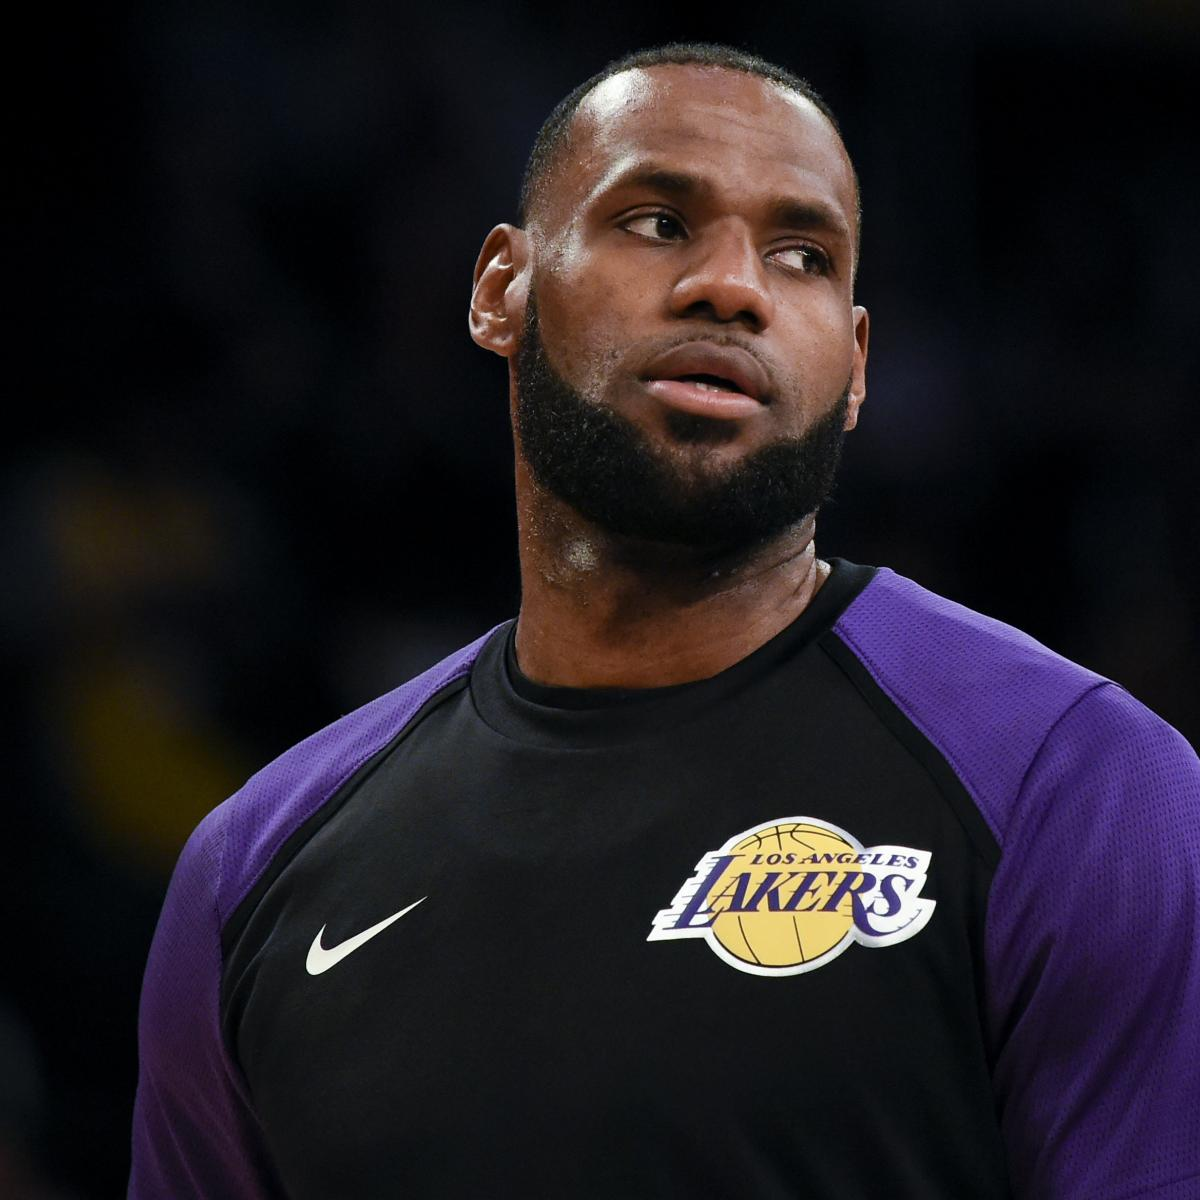 LeBron James Says Love Is Stronger Than Hate After Thousand Oaks Shooting